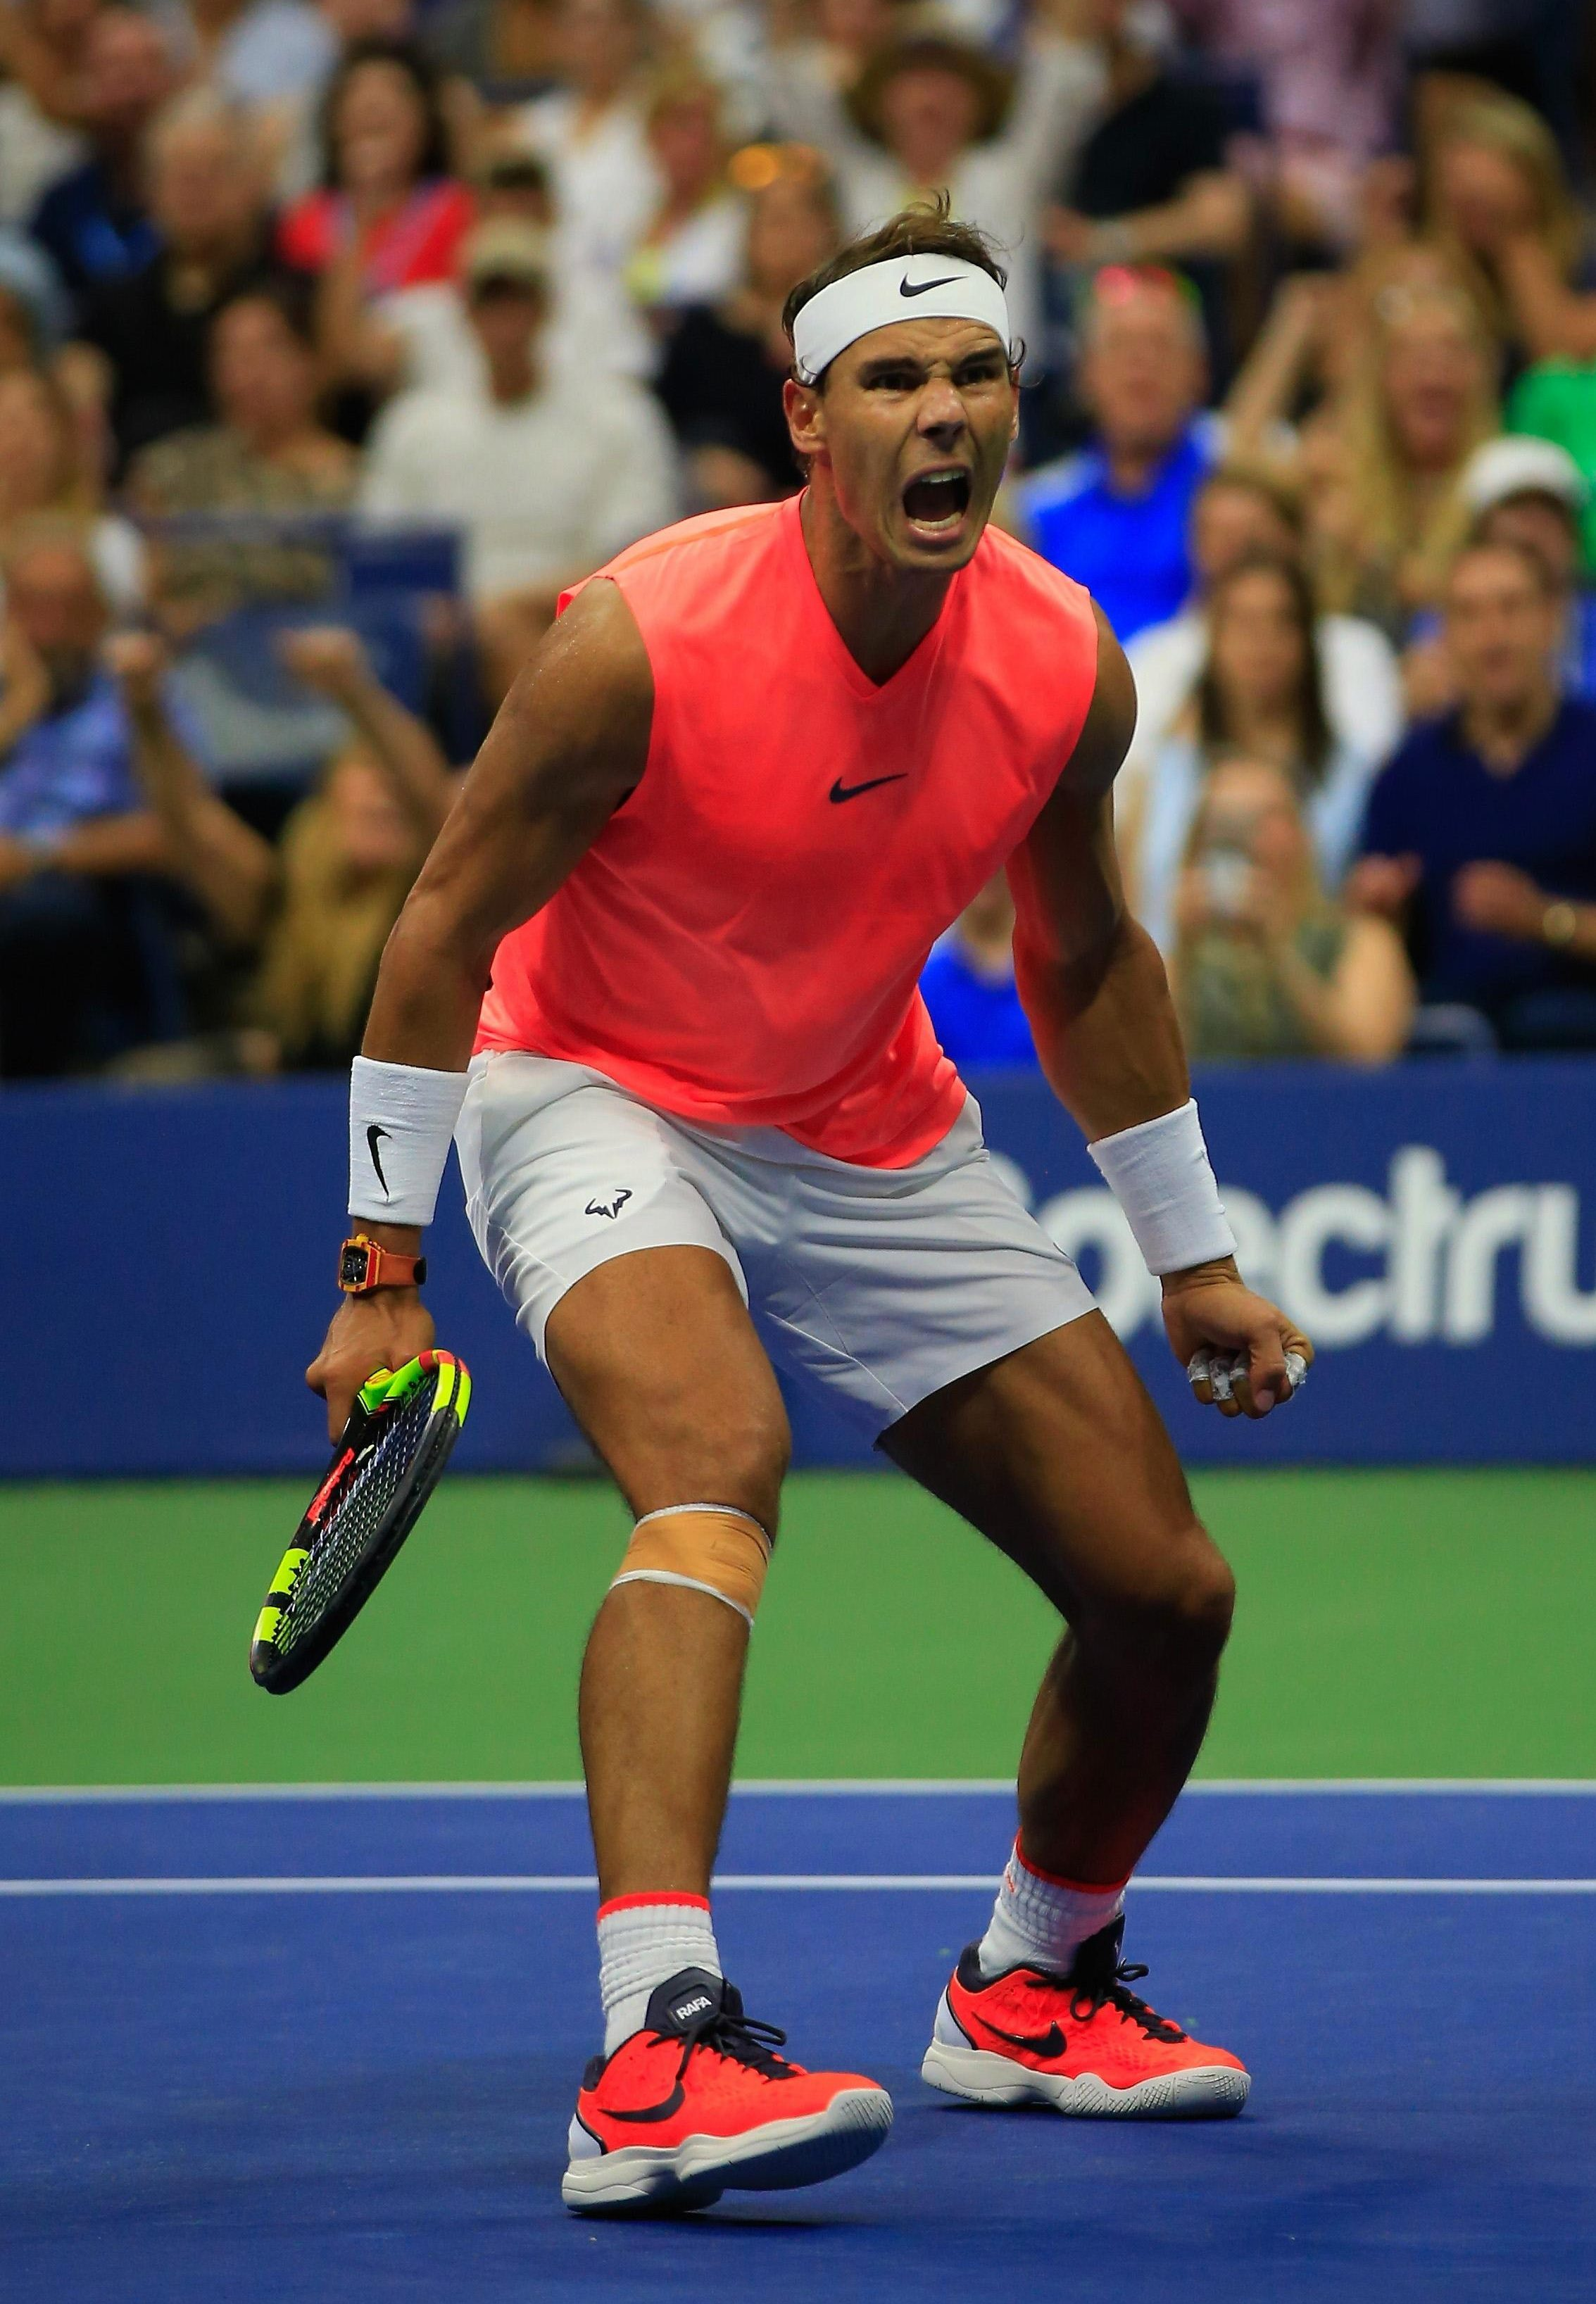 Rafael Nadal fought back to beat Karen Khachanov in four sets after a major shock was on the cards